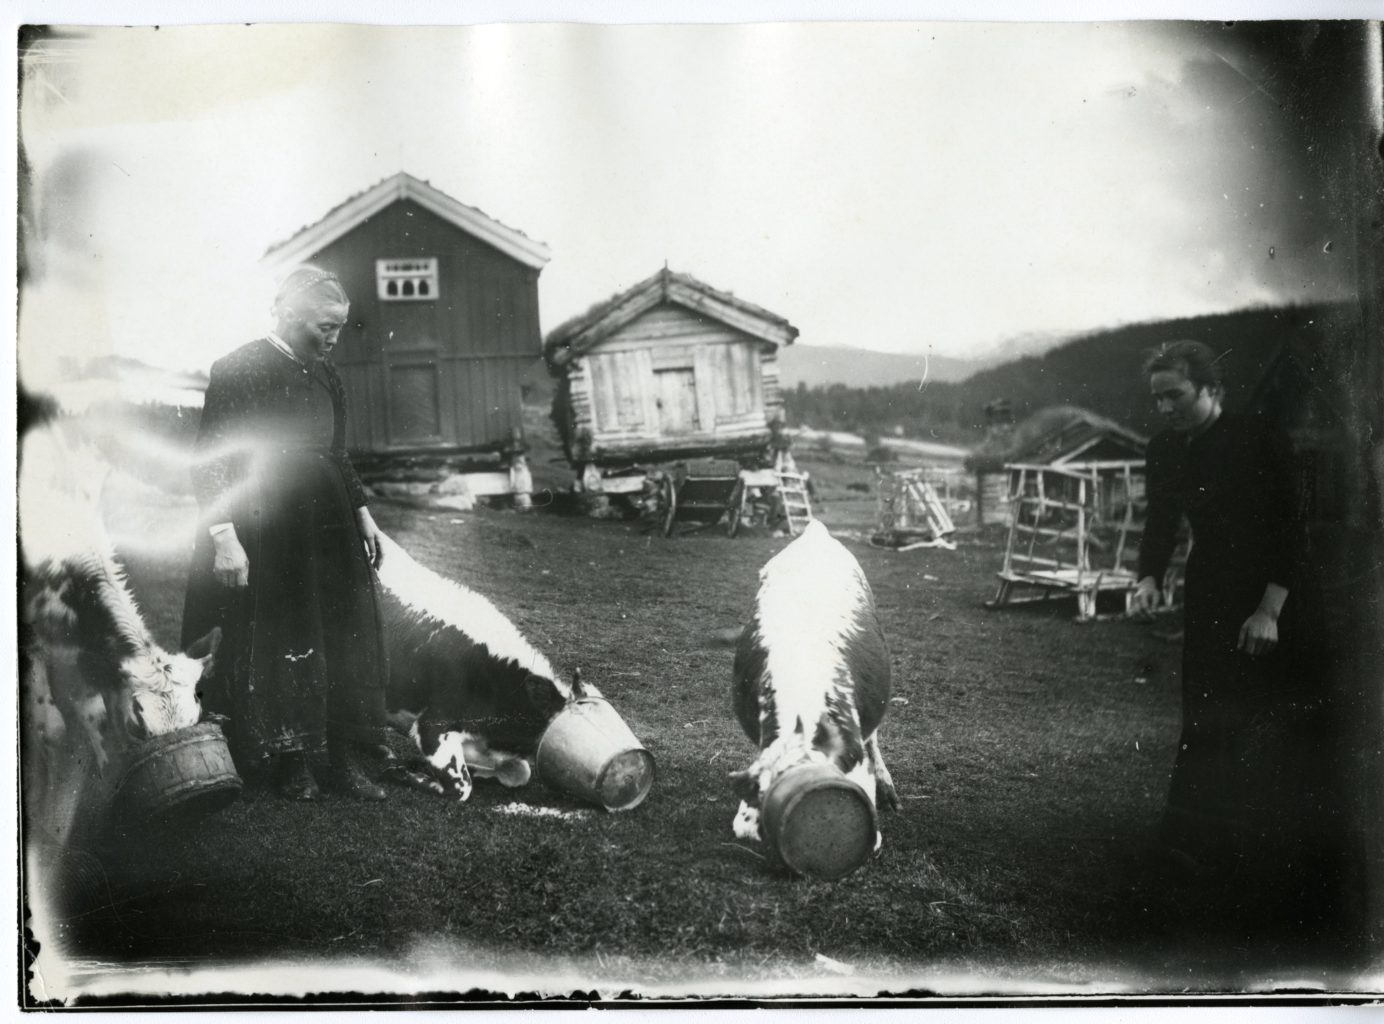 Two women feed three cows outside.